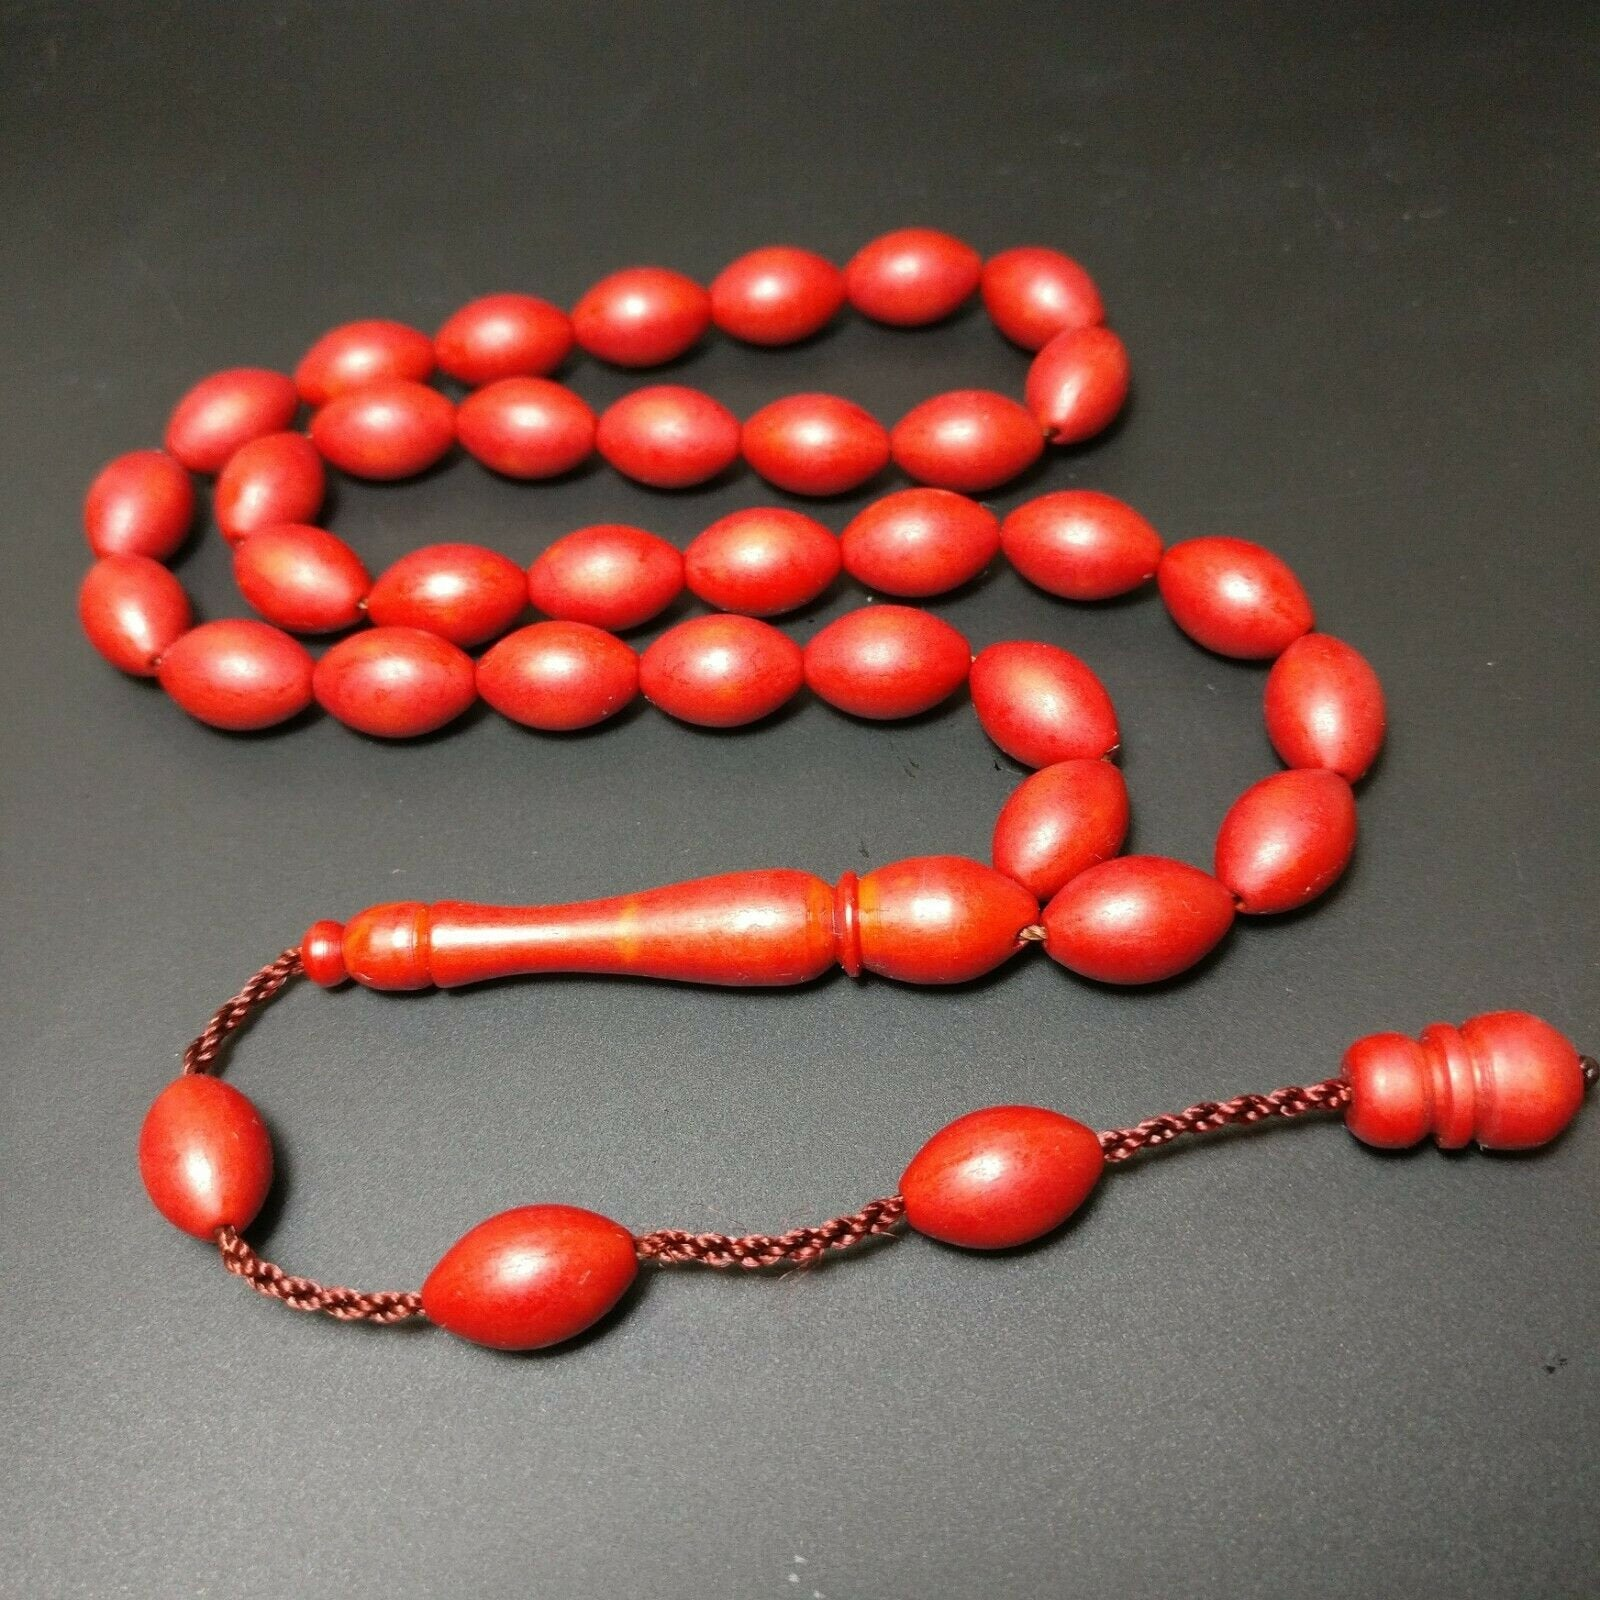 Prayer Beads from German Fiber, Alman Fiber Tesbih Muslim Islam Tasbih Turkish Misbaha Subha Komboloi, Tespih, Worry Beads 616